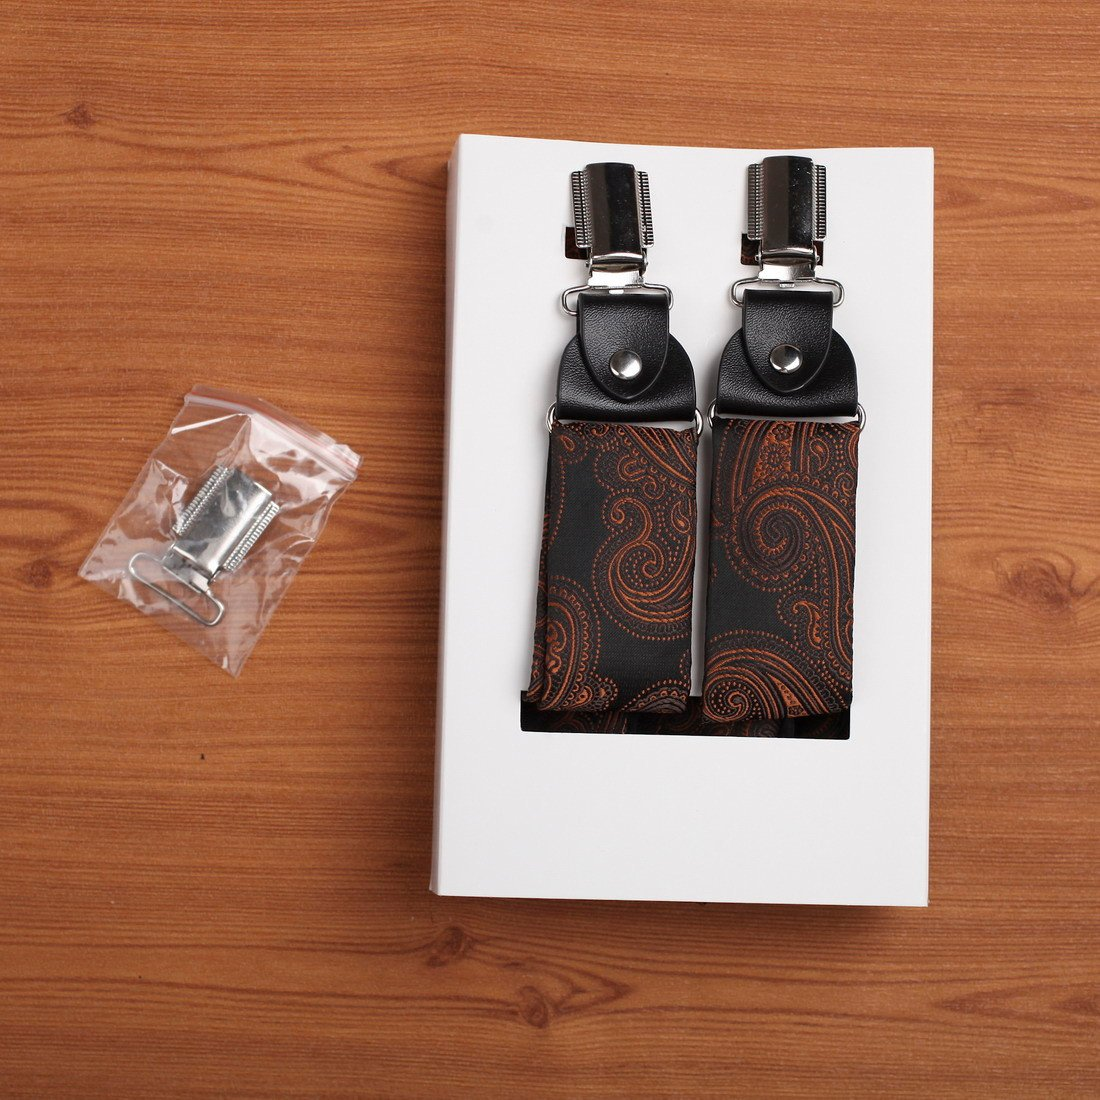 EFBB0045 Brown Patterned Extendable Microfiber Y-Back Suspenders Stainless Steel Clip Elegant Gift Giving By Epoint by Epoint (Image #6)